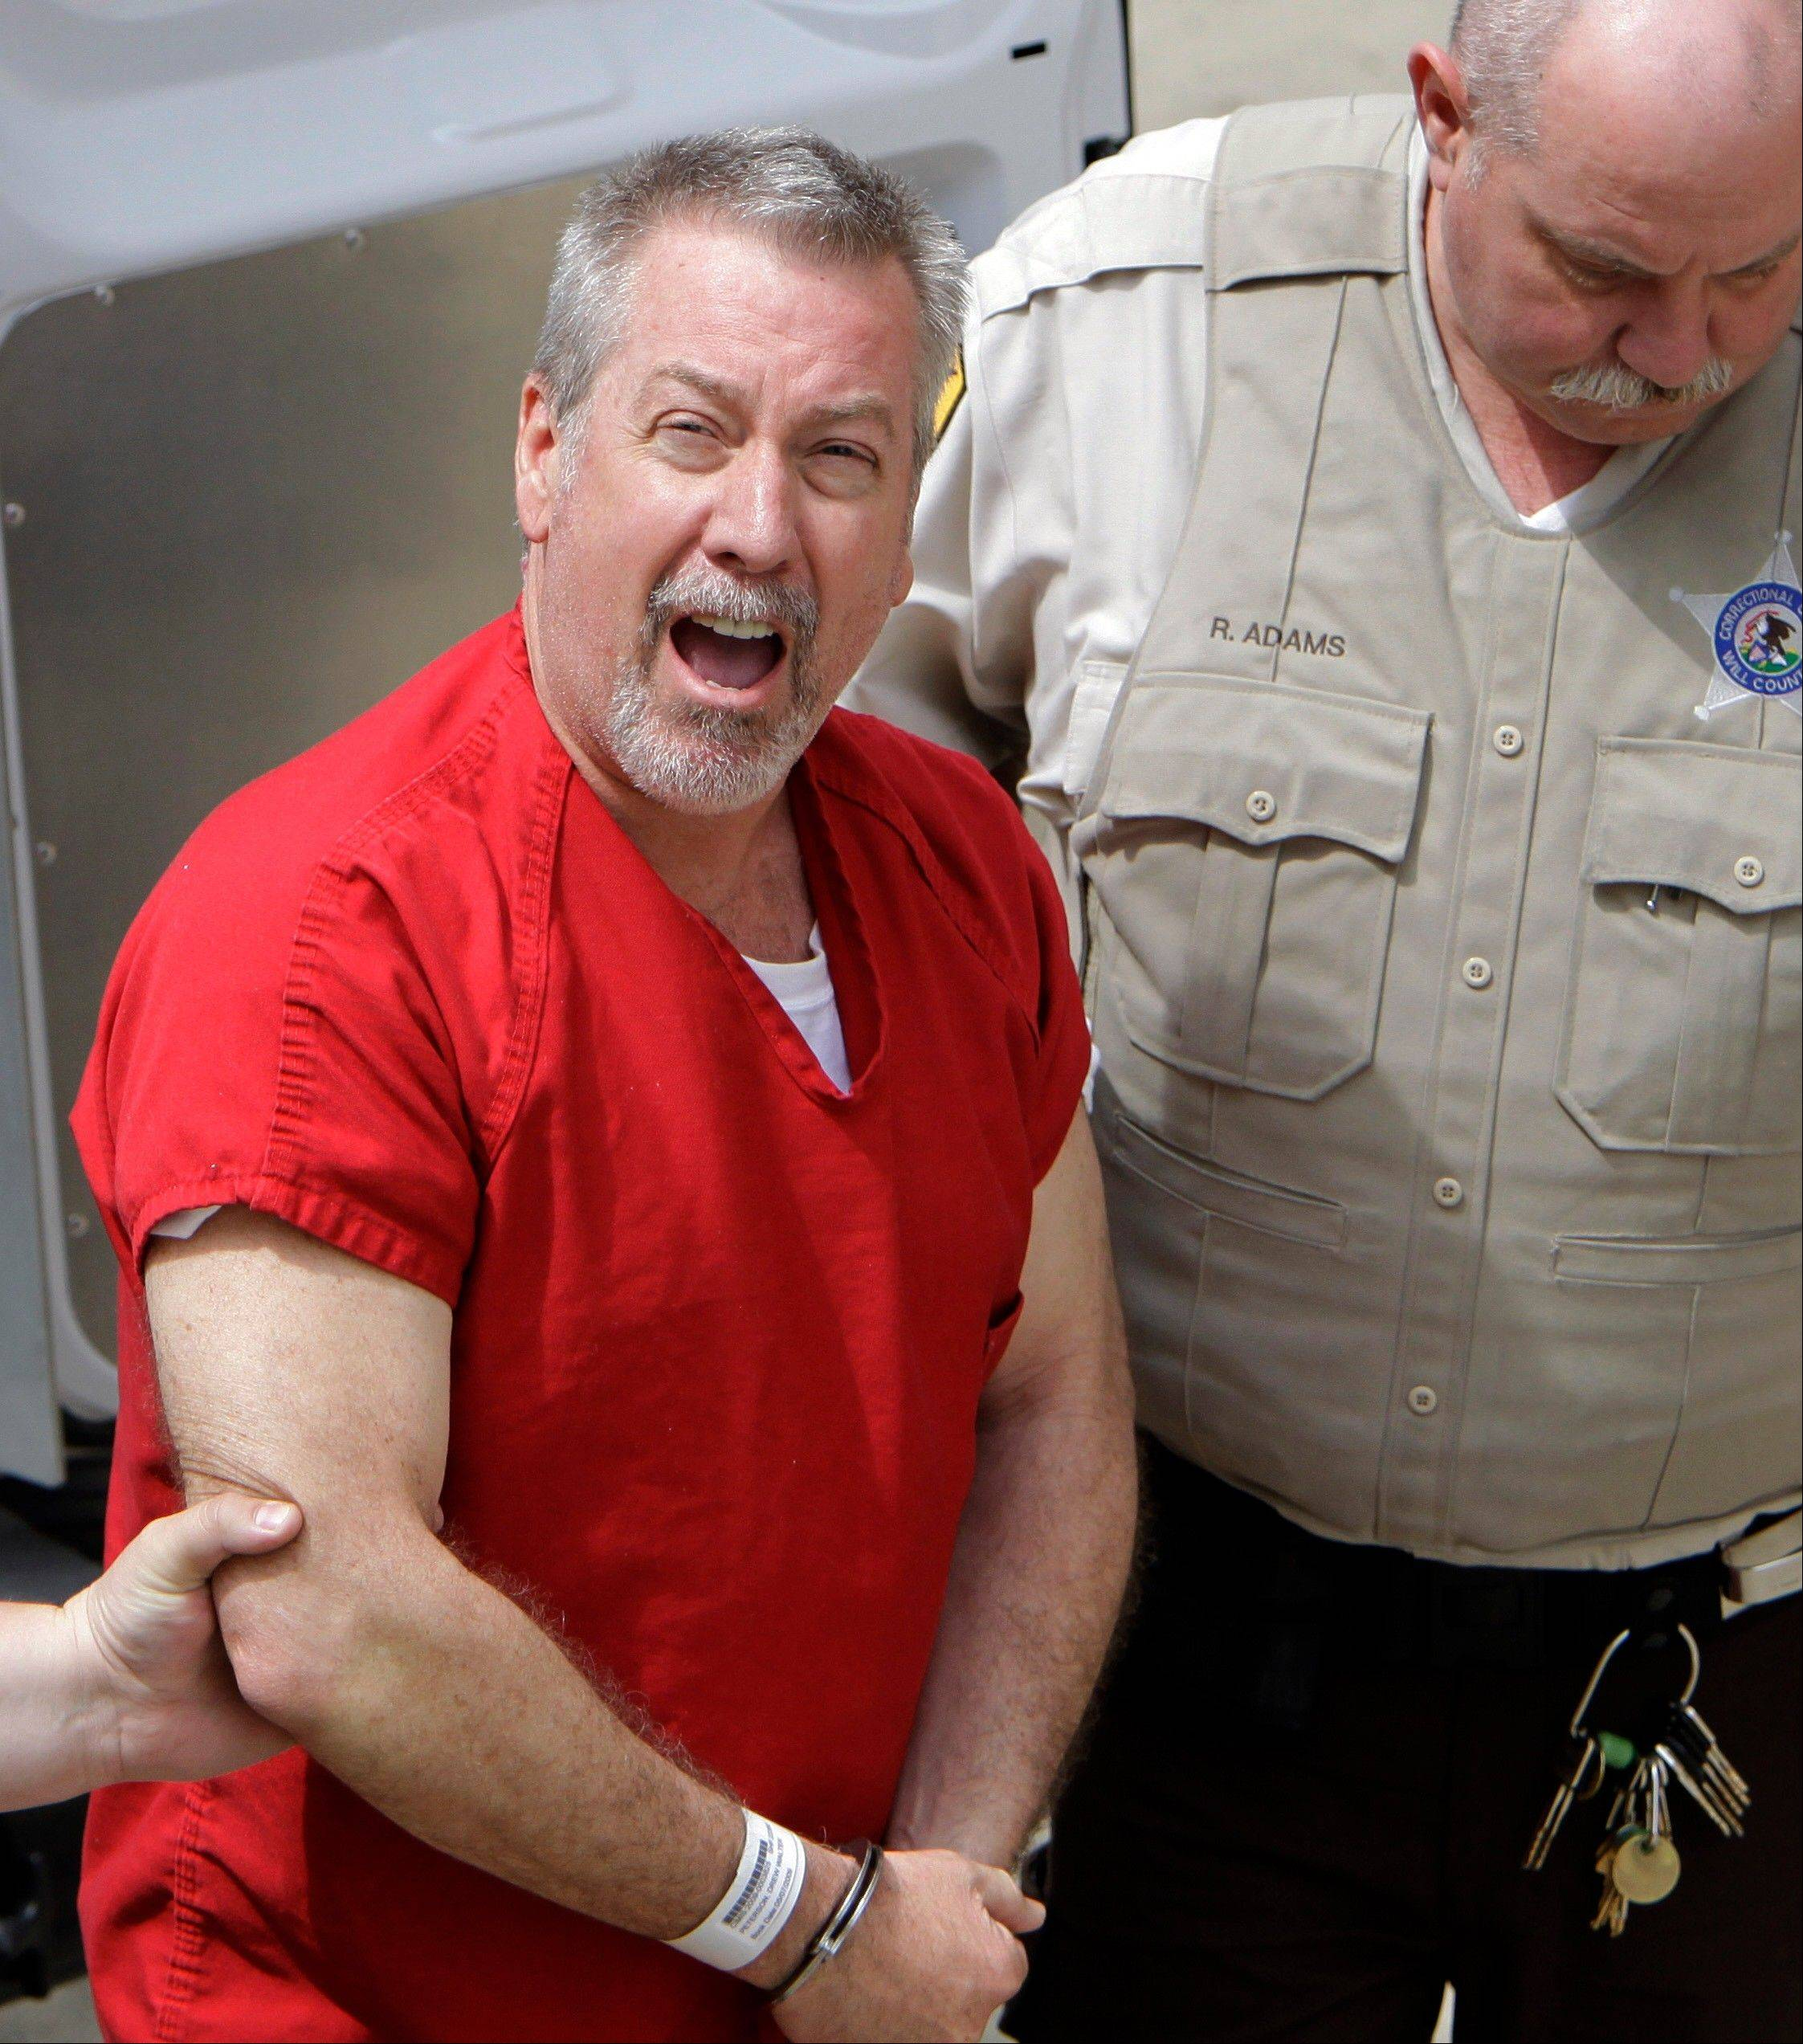 Drew Peterson yells to reporters as he arrives at the Will County courthouse in 2009 for his arraignment on charges of first-degree murder in the 2004 death of his former wife Kathleen Savio.